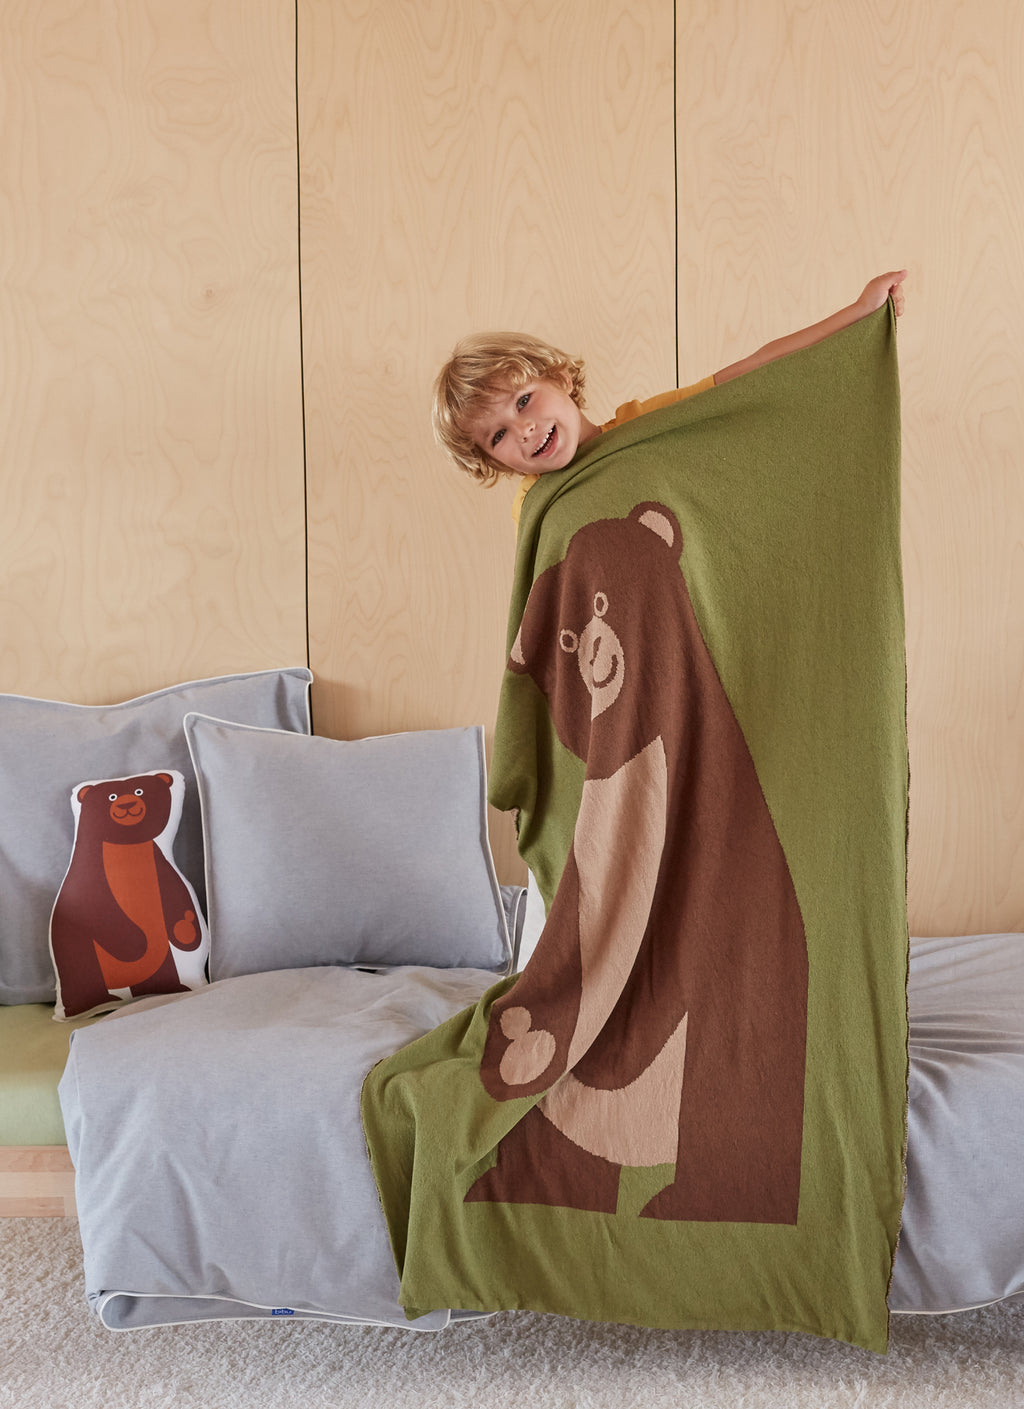 Kid smiling with large eco-friendly brown bear blanket